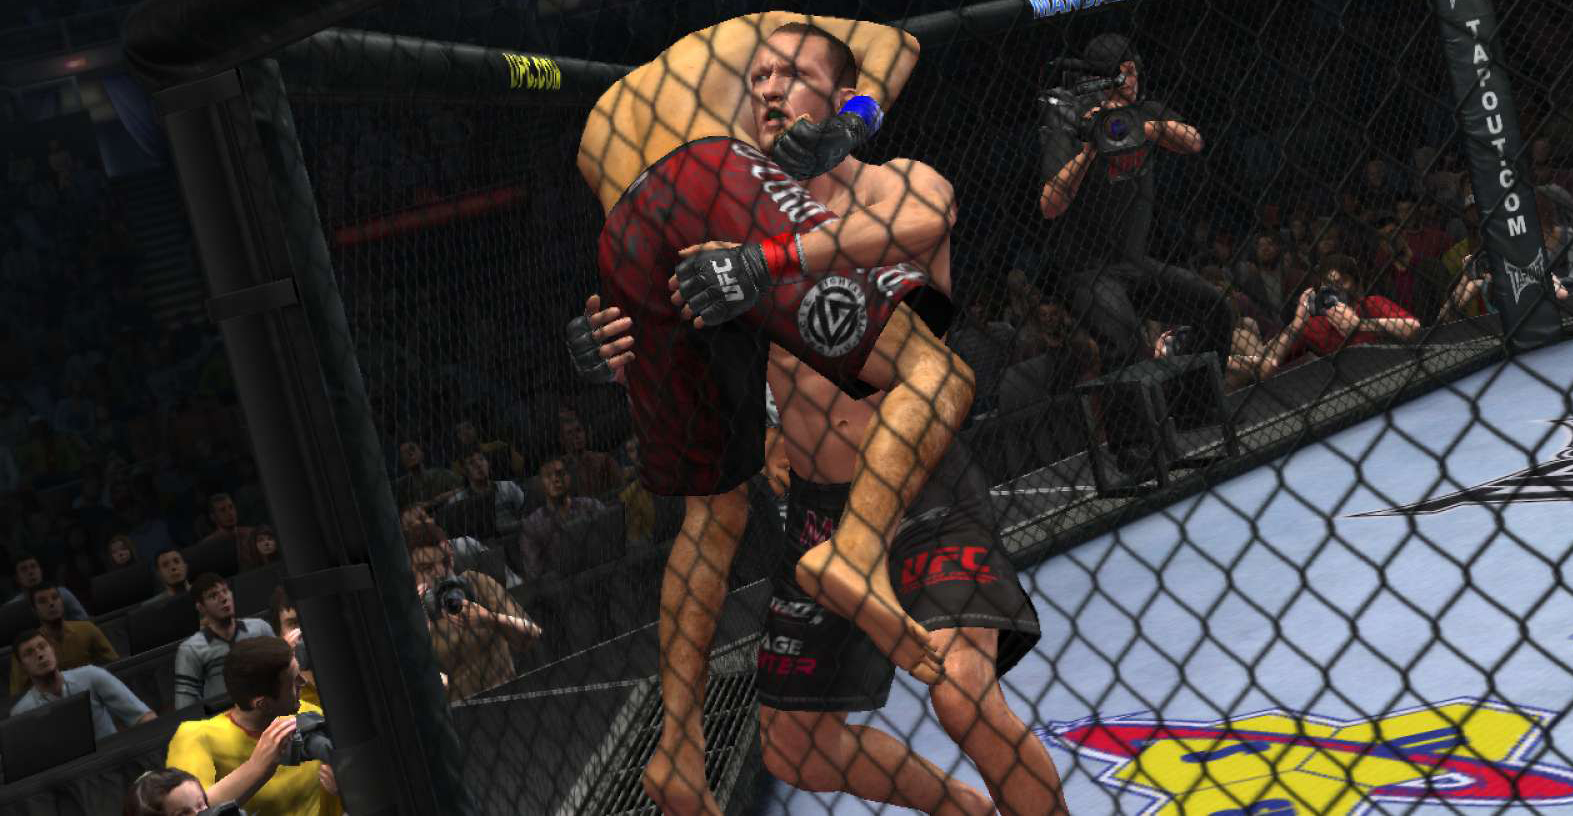 UFC Undisputed 3 vs UFC 2010 screenshots of the Fight Cage